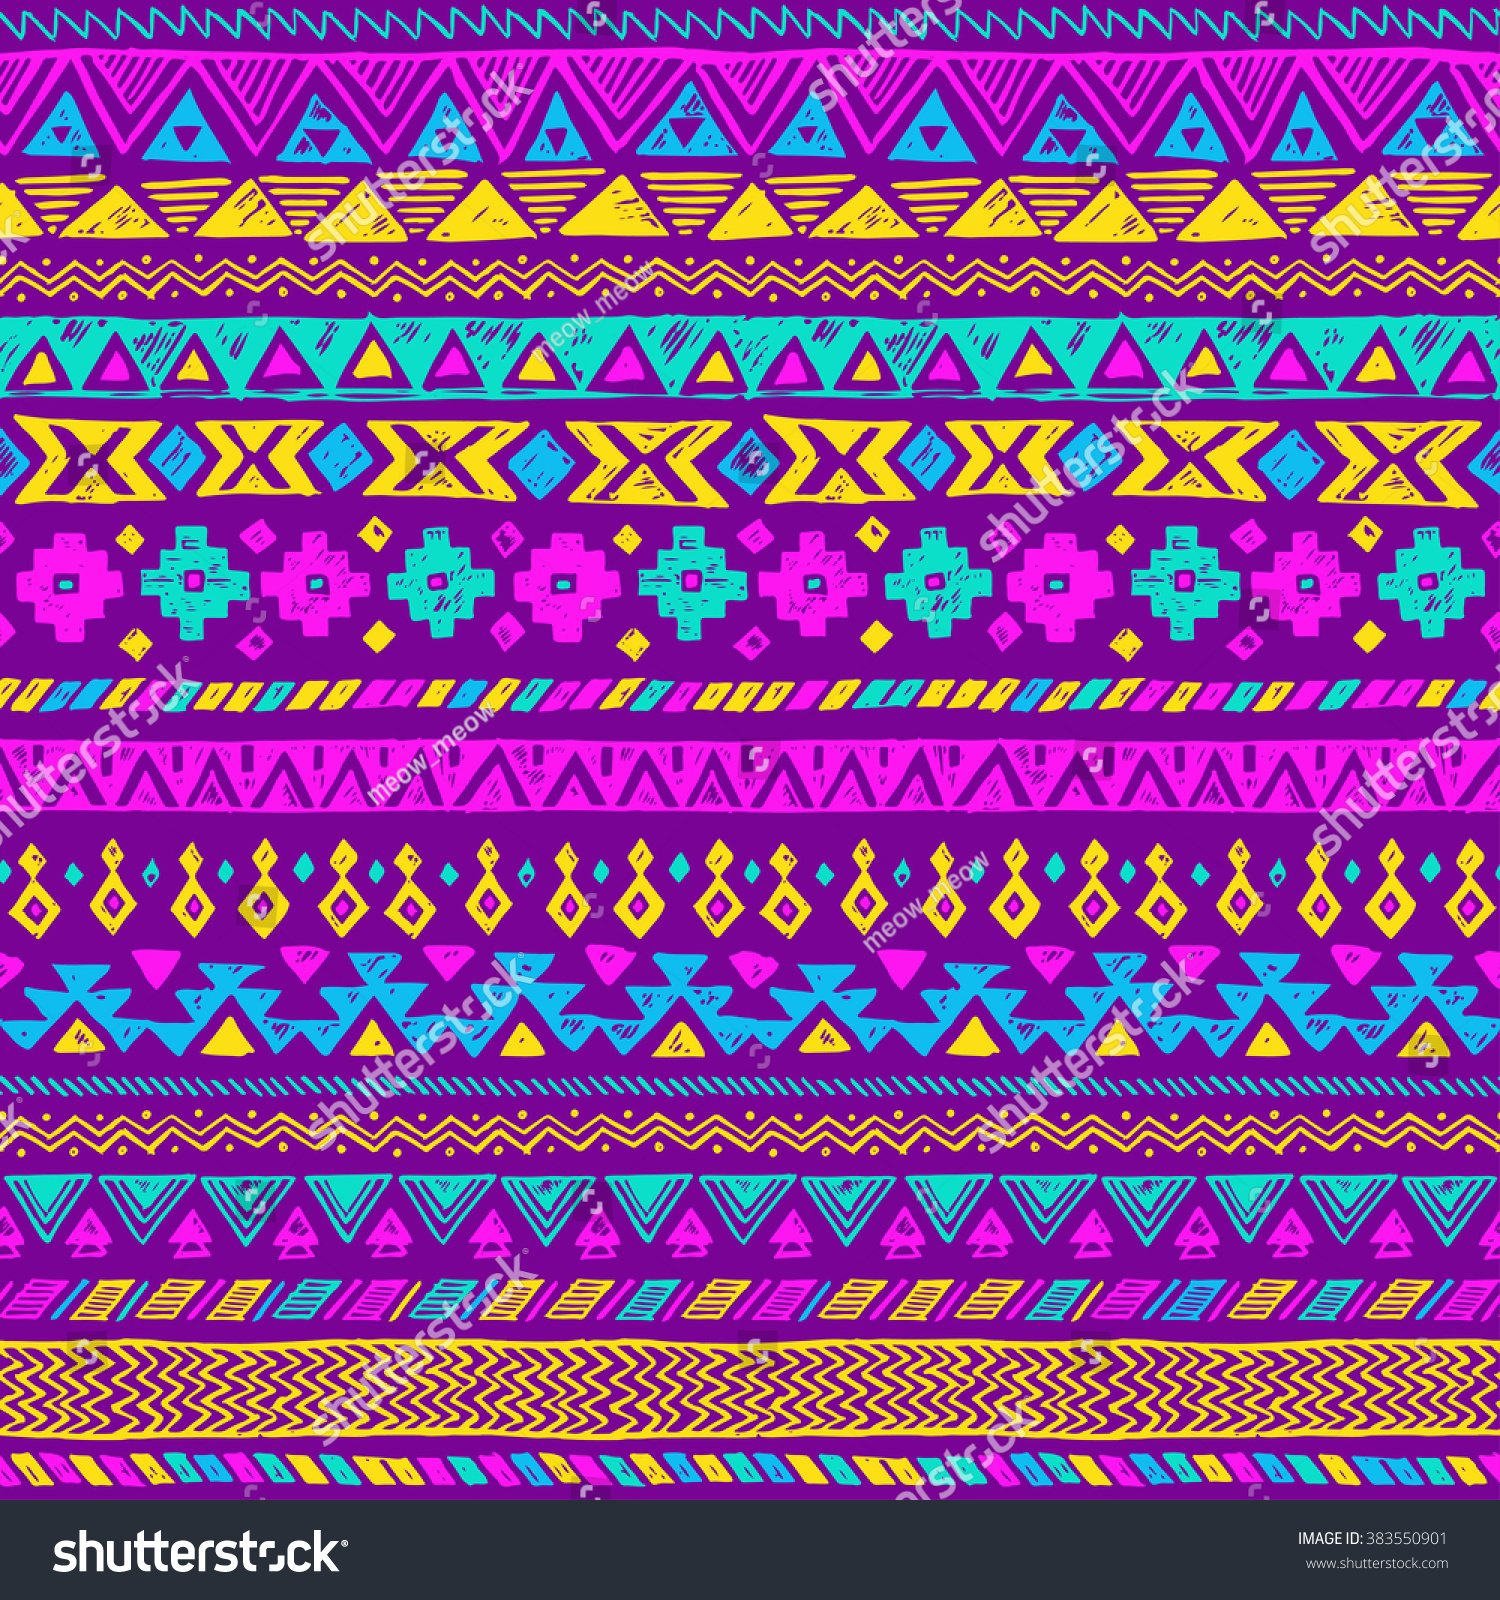 100 Neon Color Tribal Navajo Seamless Black White